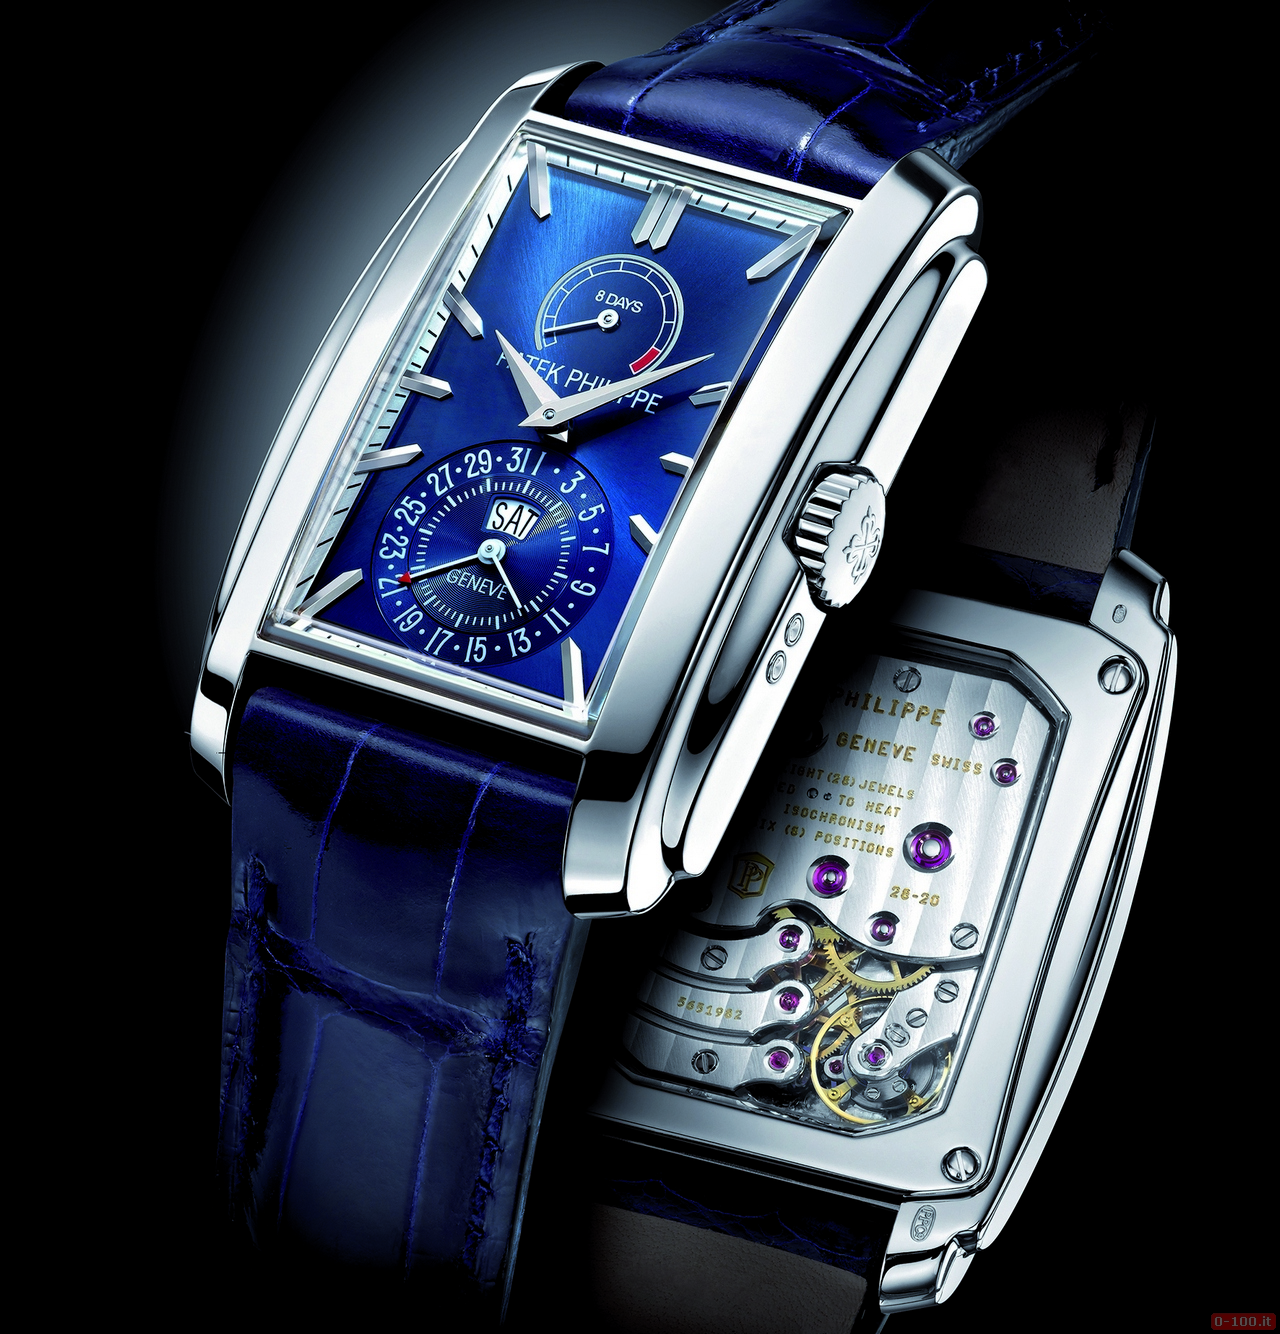 baselworld-2013-patek-philippe-gondolo-8-days-day-date-indication_0-100_1